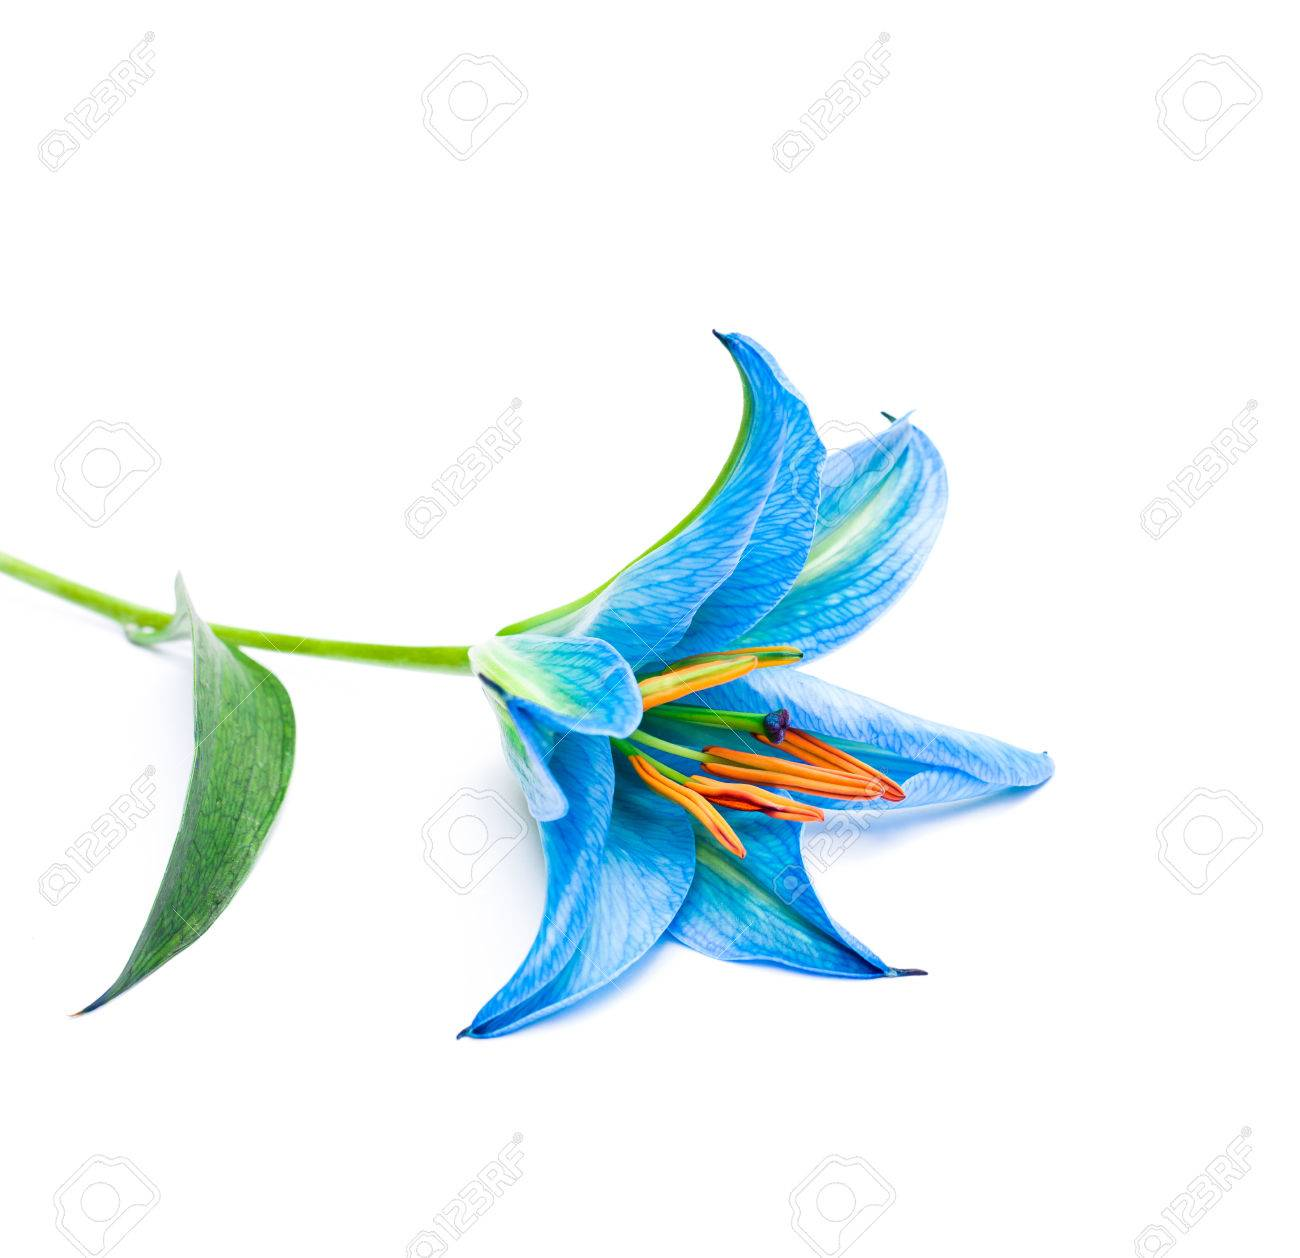 Blue lily flower on white background isolated stock photo picture blue lily flower on white background isolated stock photo 61973631 izmirmasajfo